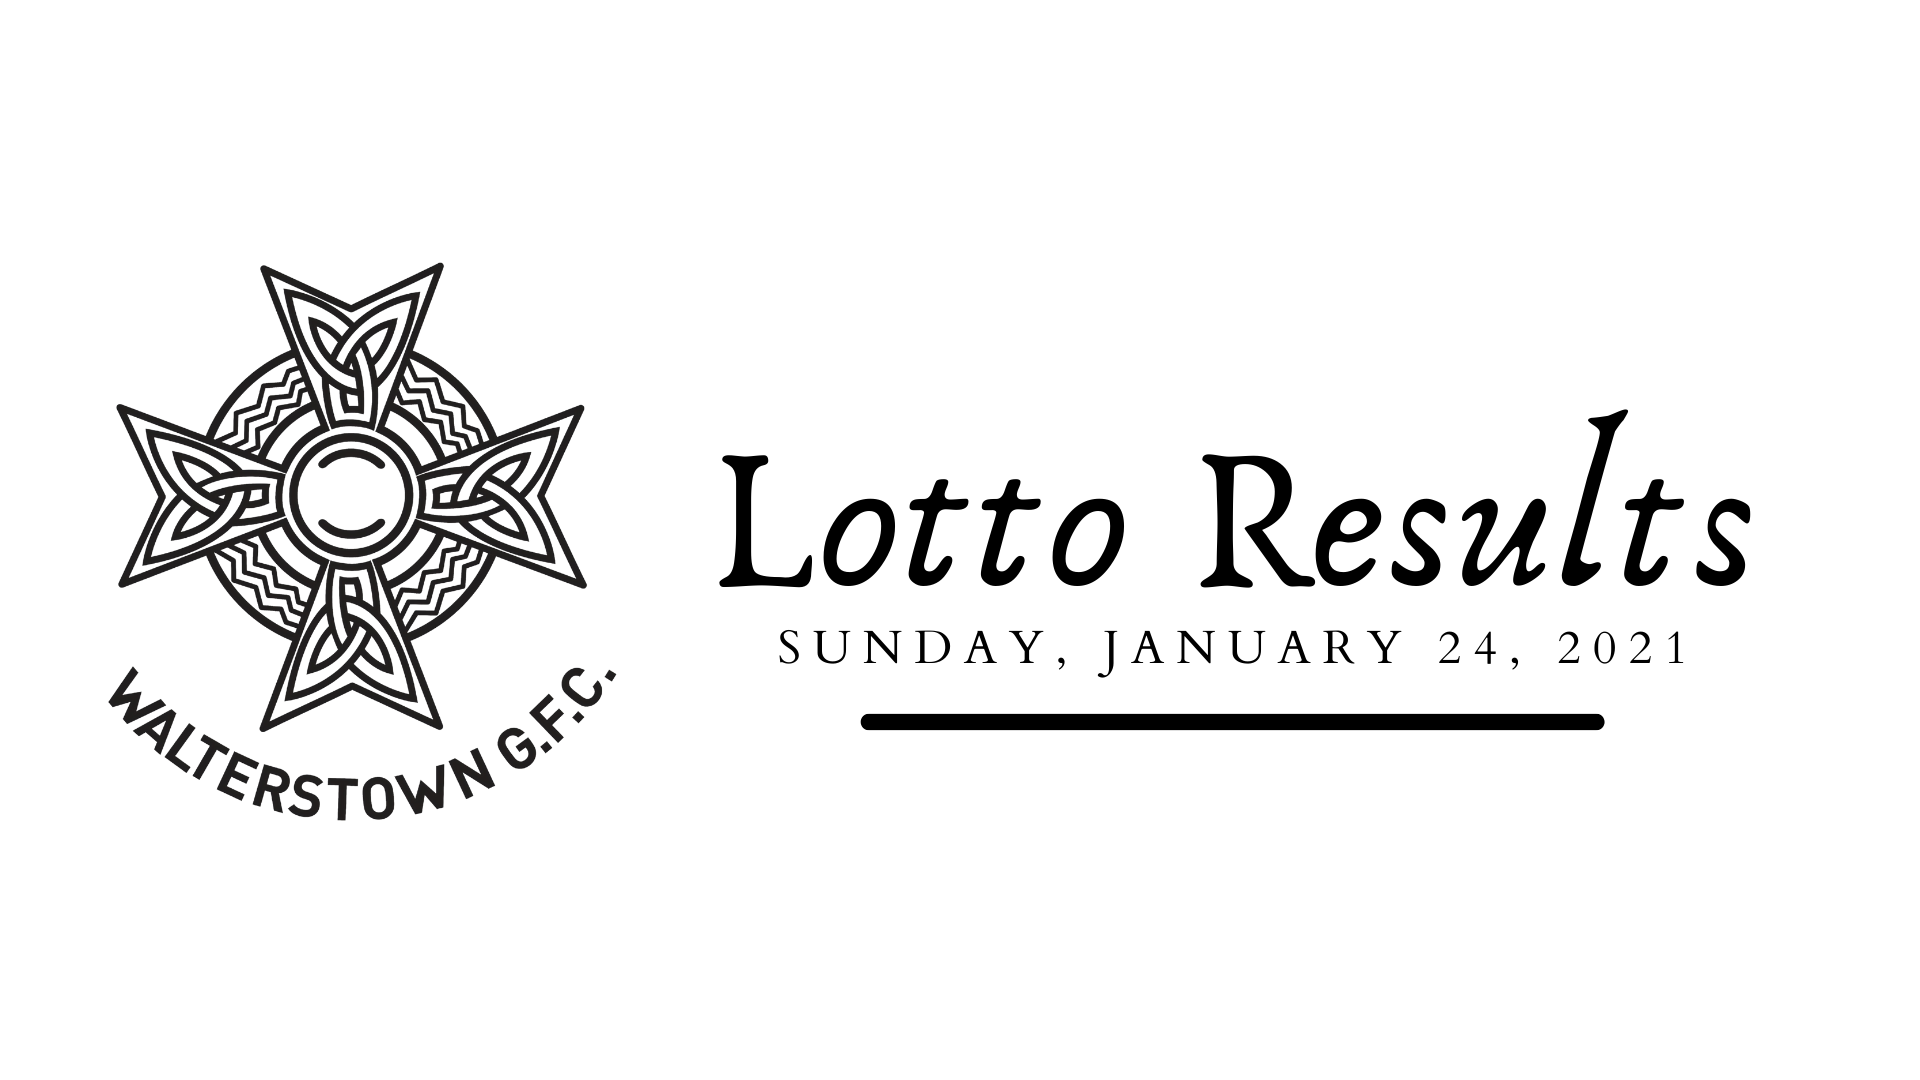 Walterstown Lotto 24-01-21